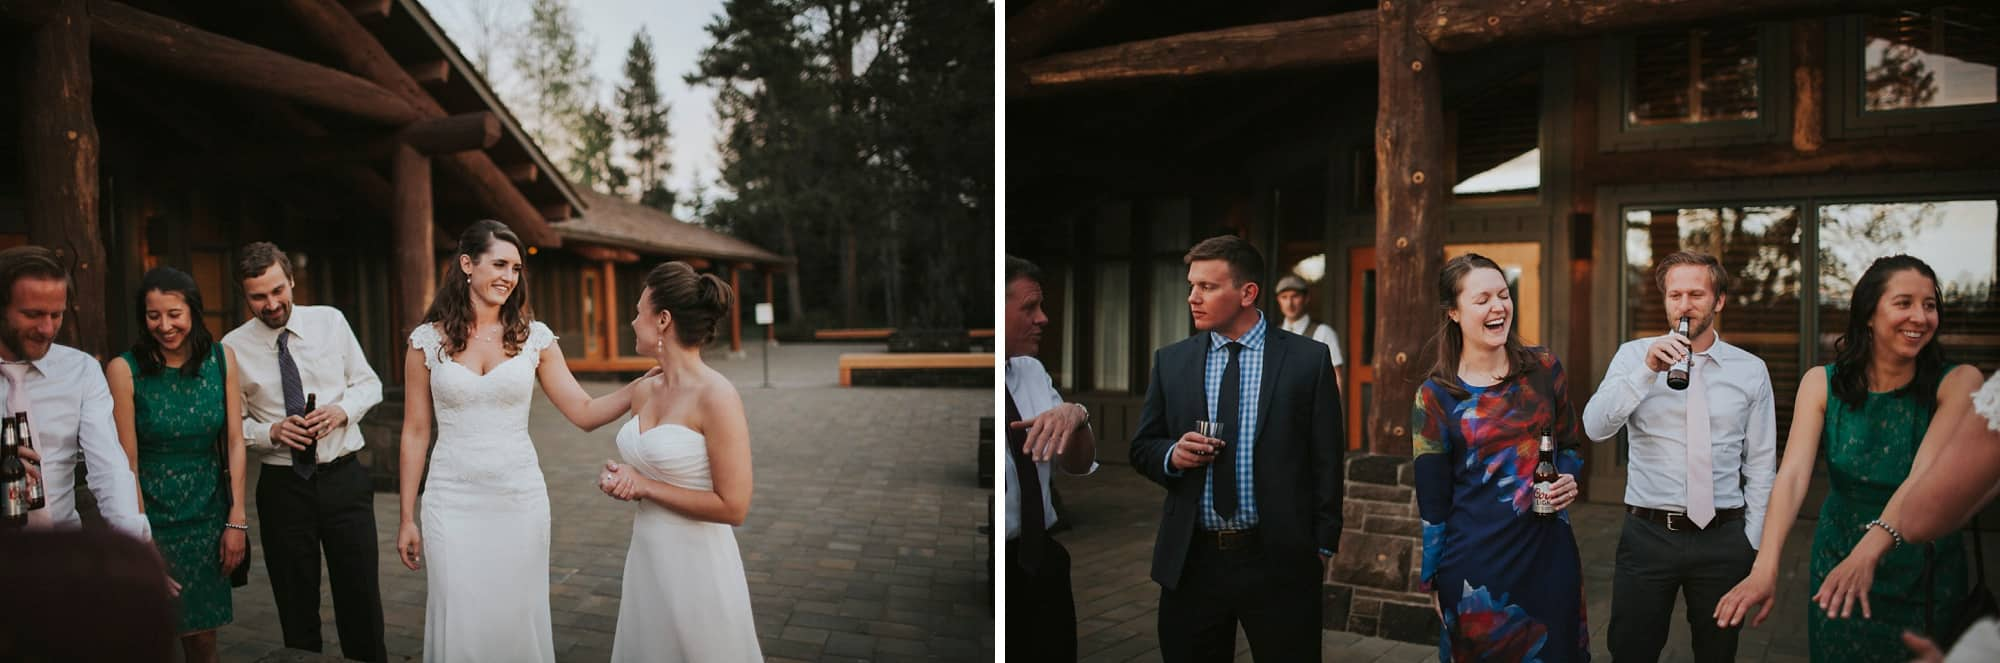 Sara Emily Sunriver Bend Oregon Rustic Lodge Wedding 0066